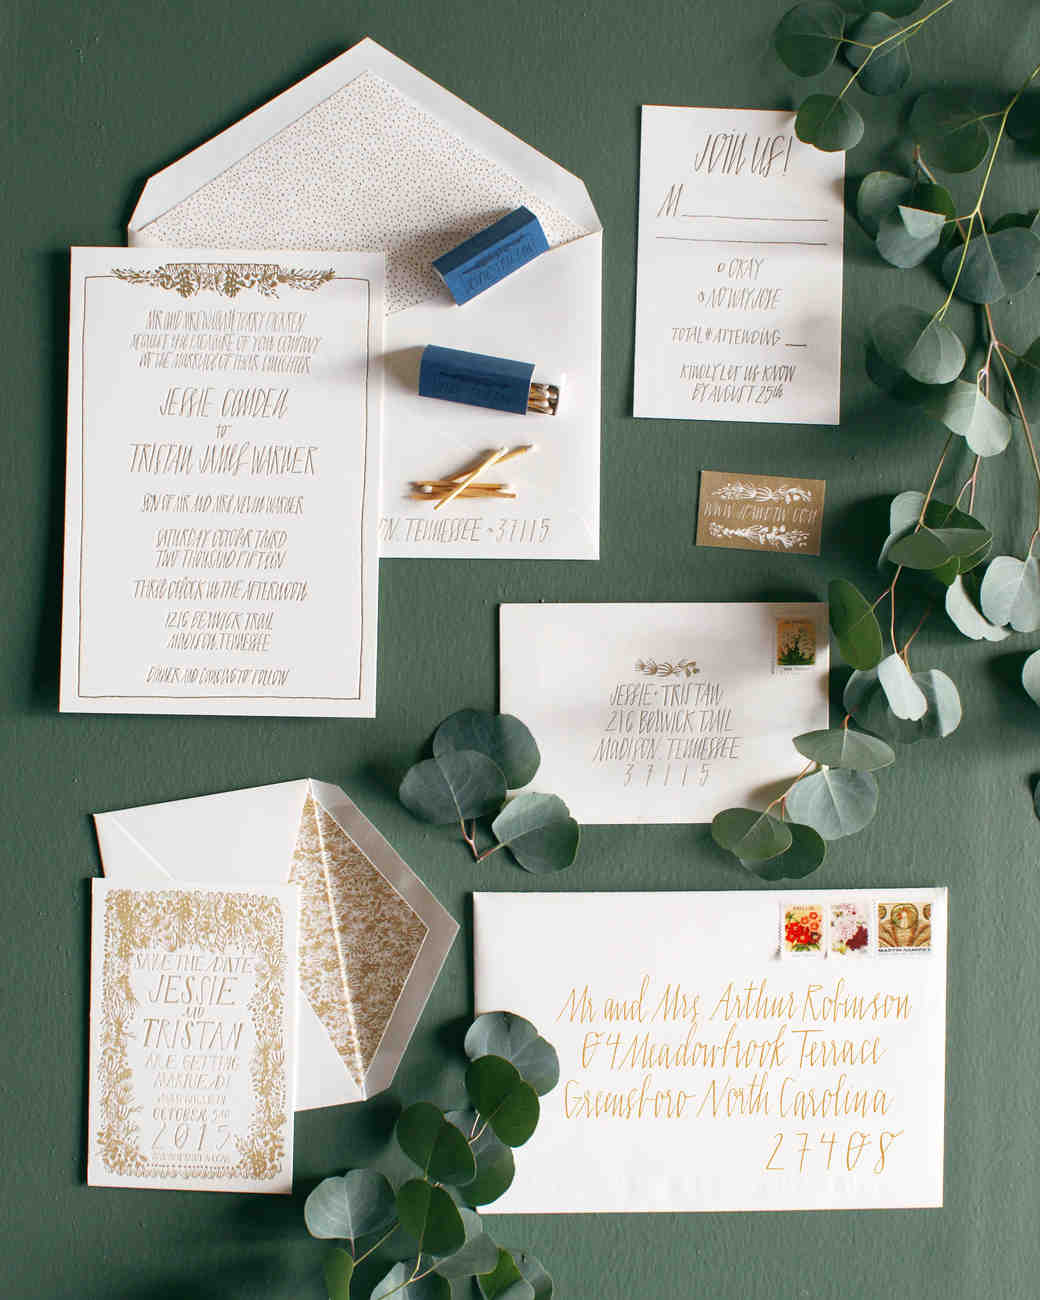 jessie tristan wedding tennessee stationery